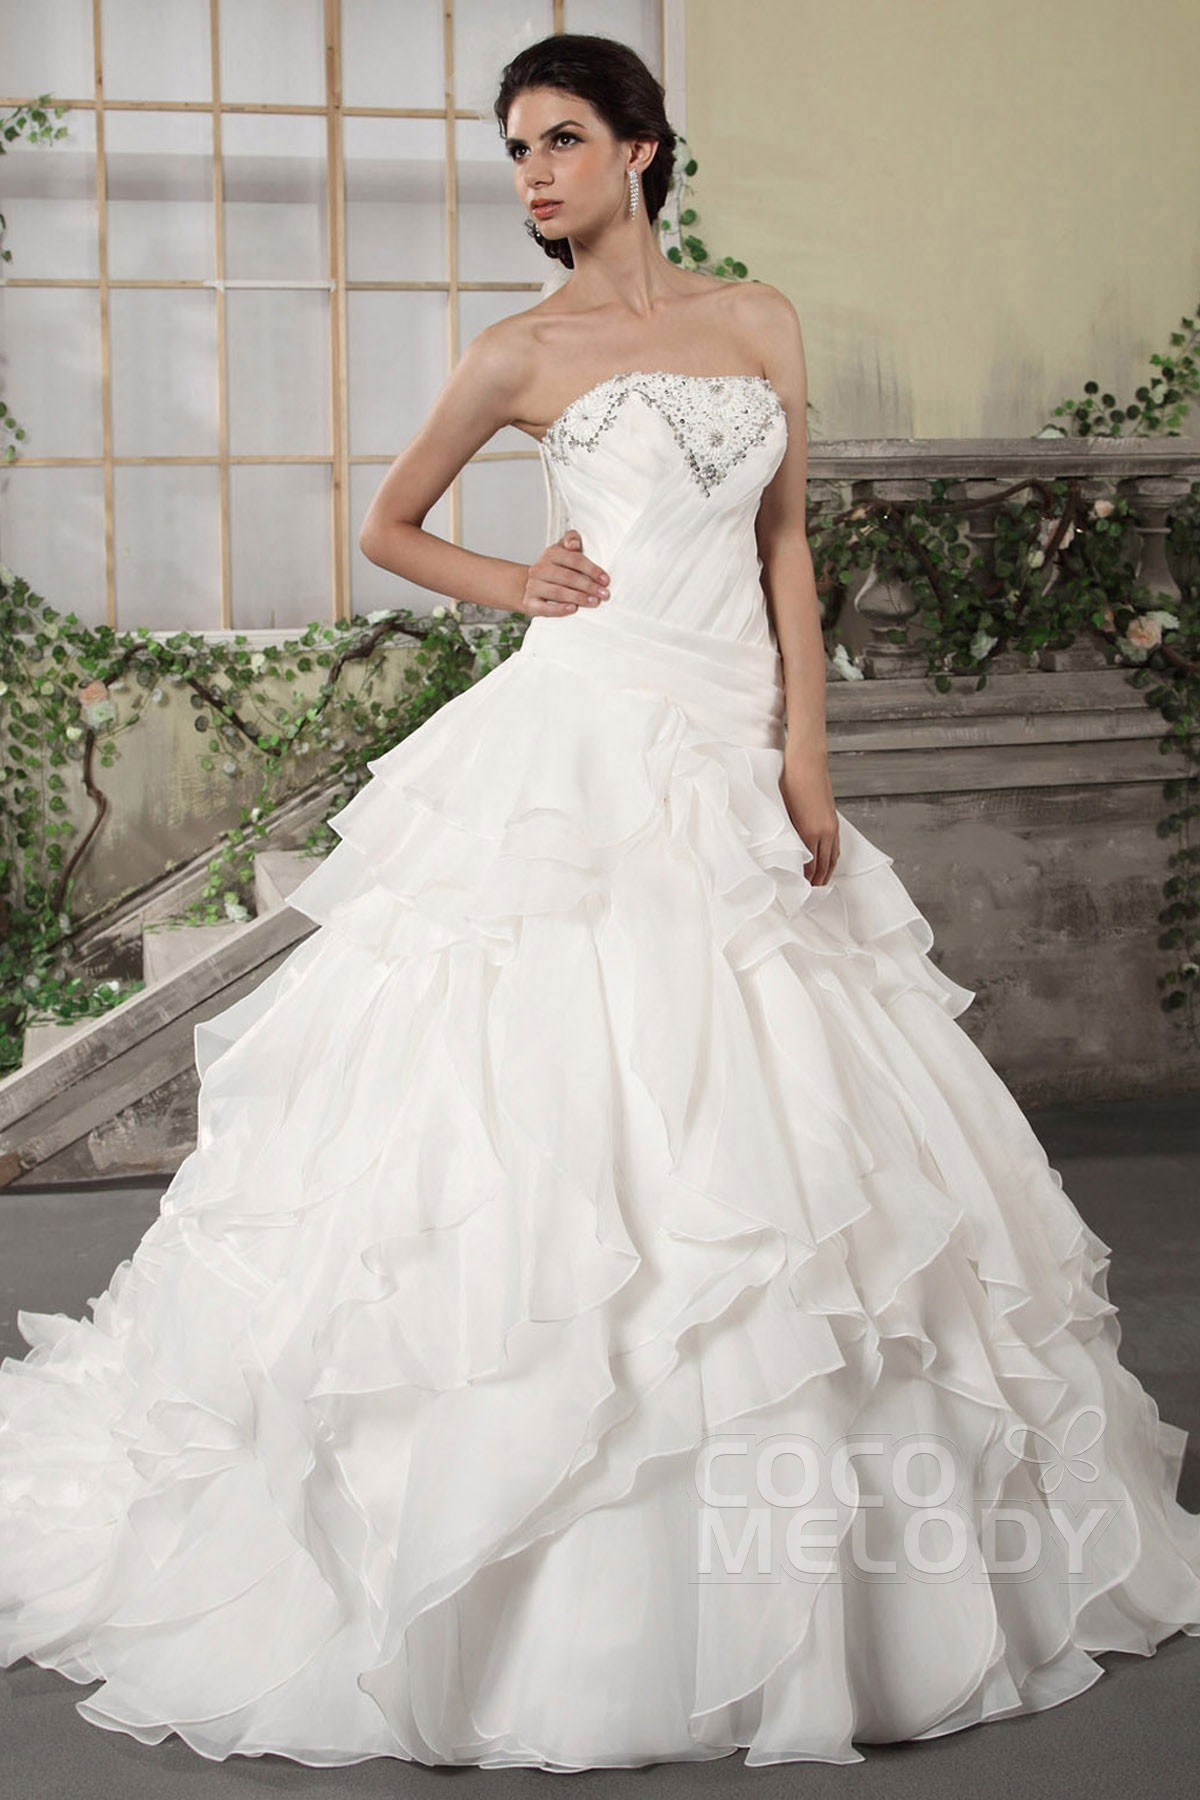 Cocomelody: Princess Strapless Chapel Train Organza ...